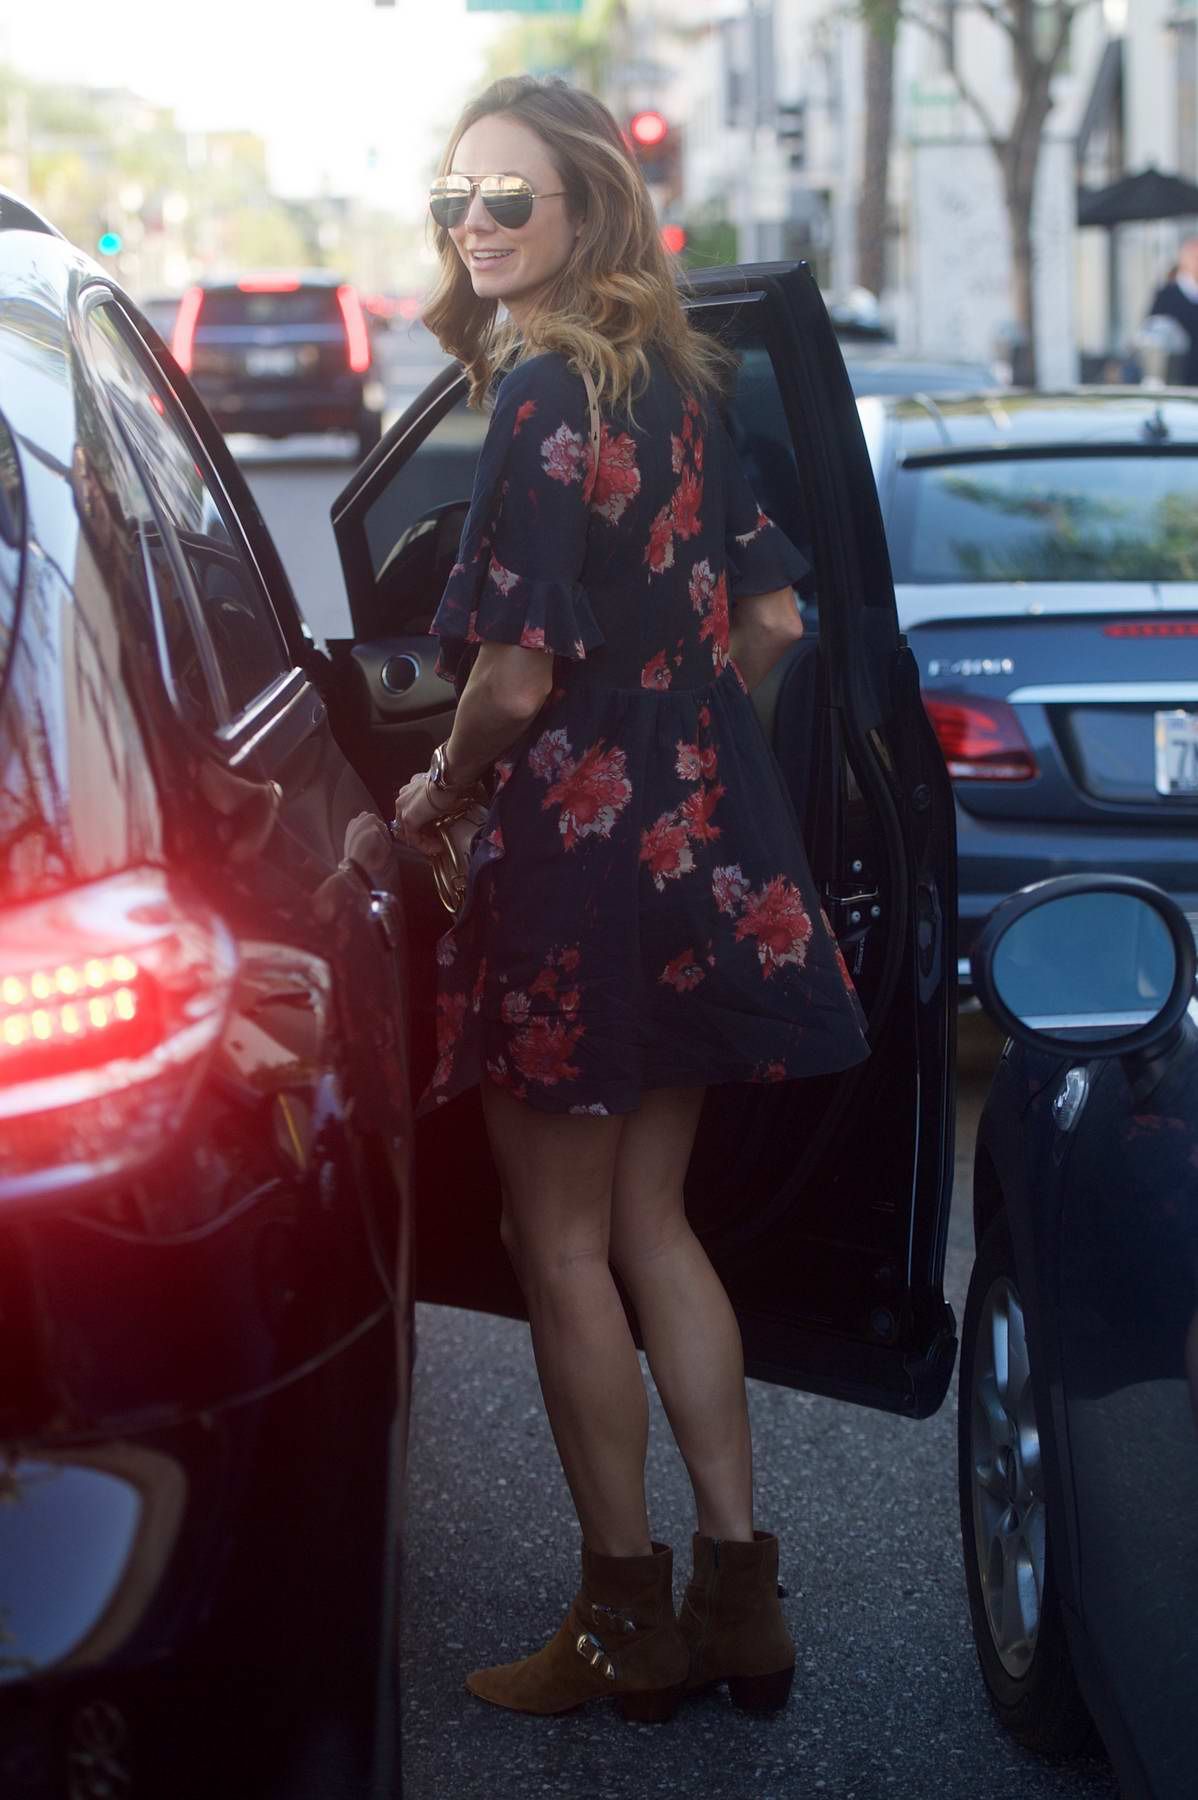 Stacy Keibler makes a quick exit from Cafe Gratitude in Beverly Hills, Los Angeles